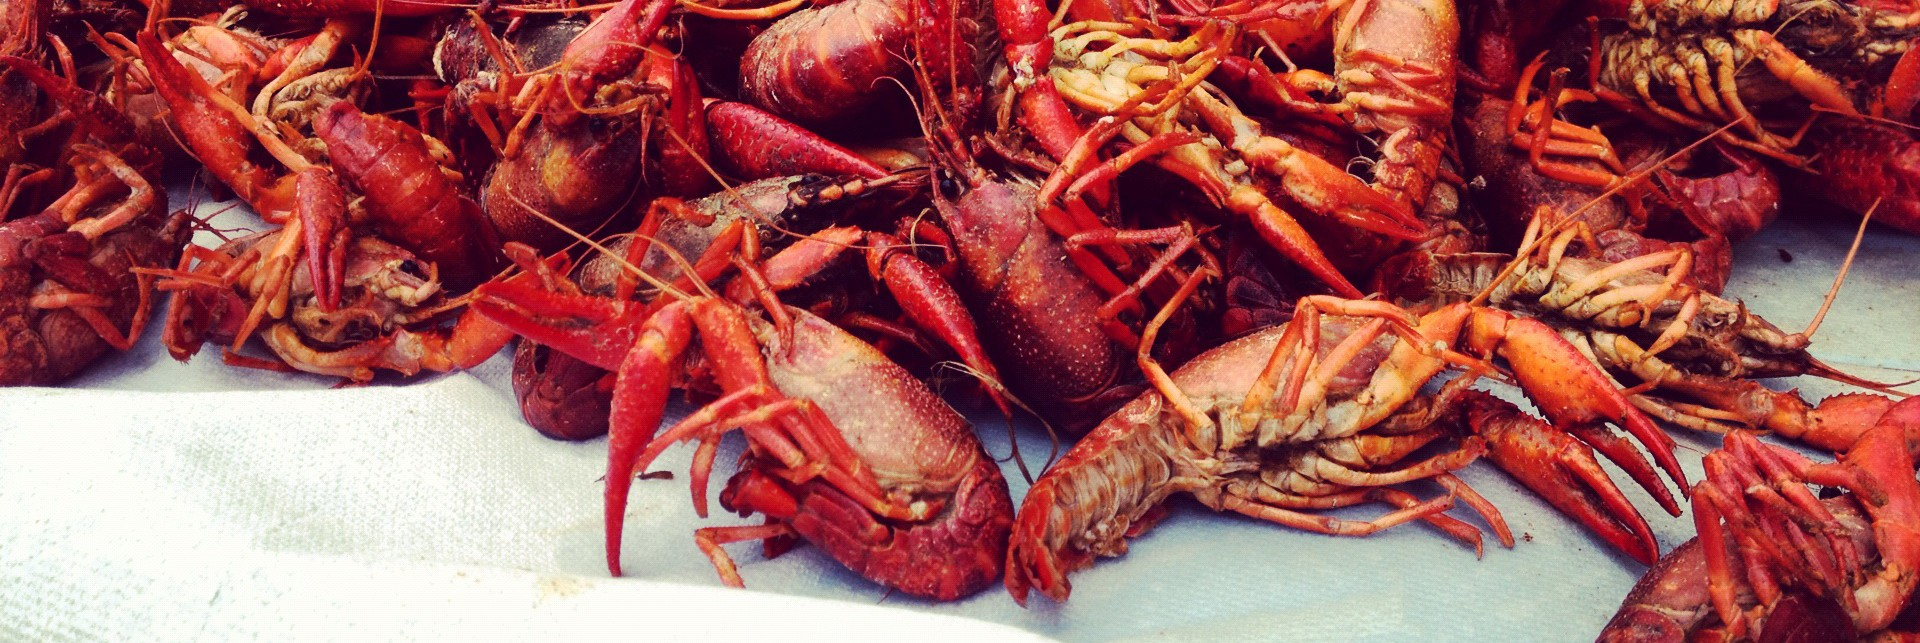 Galveston Crawfish